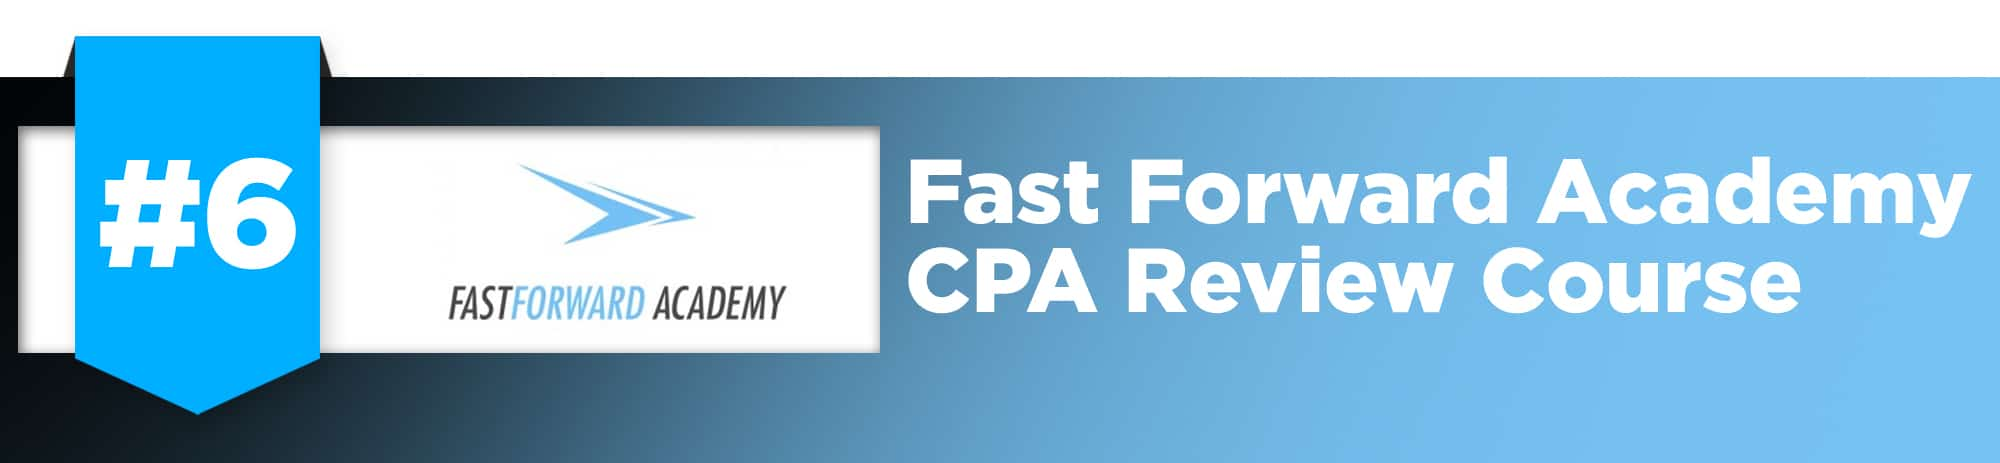 fast forward academy cpa review